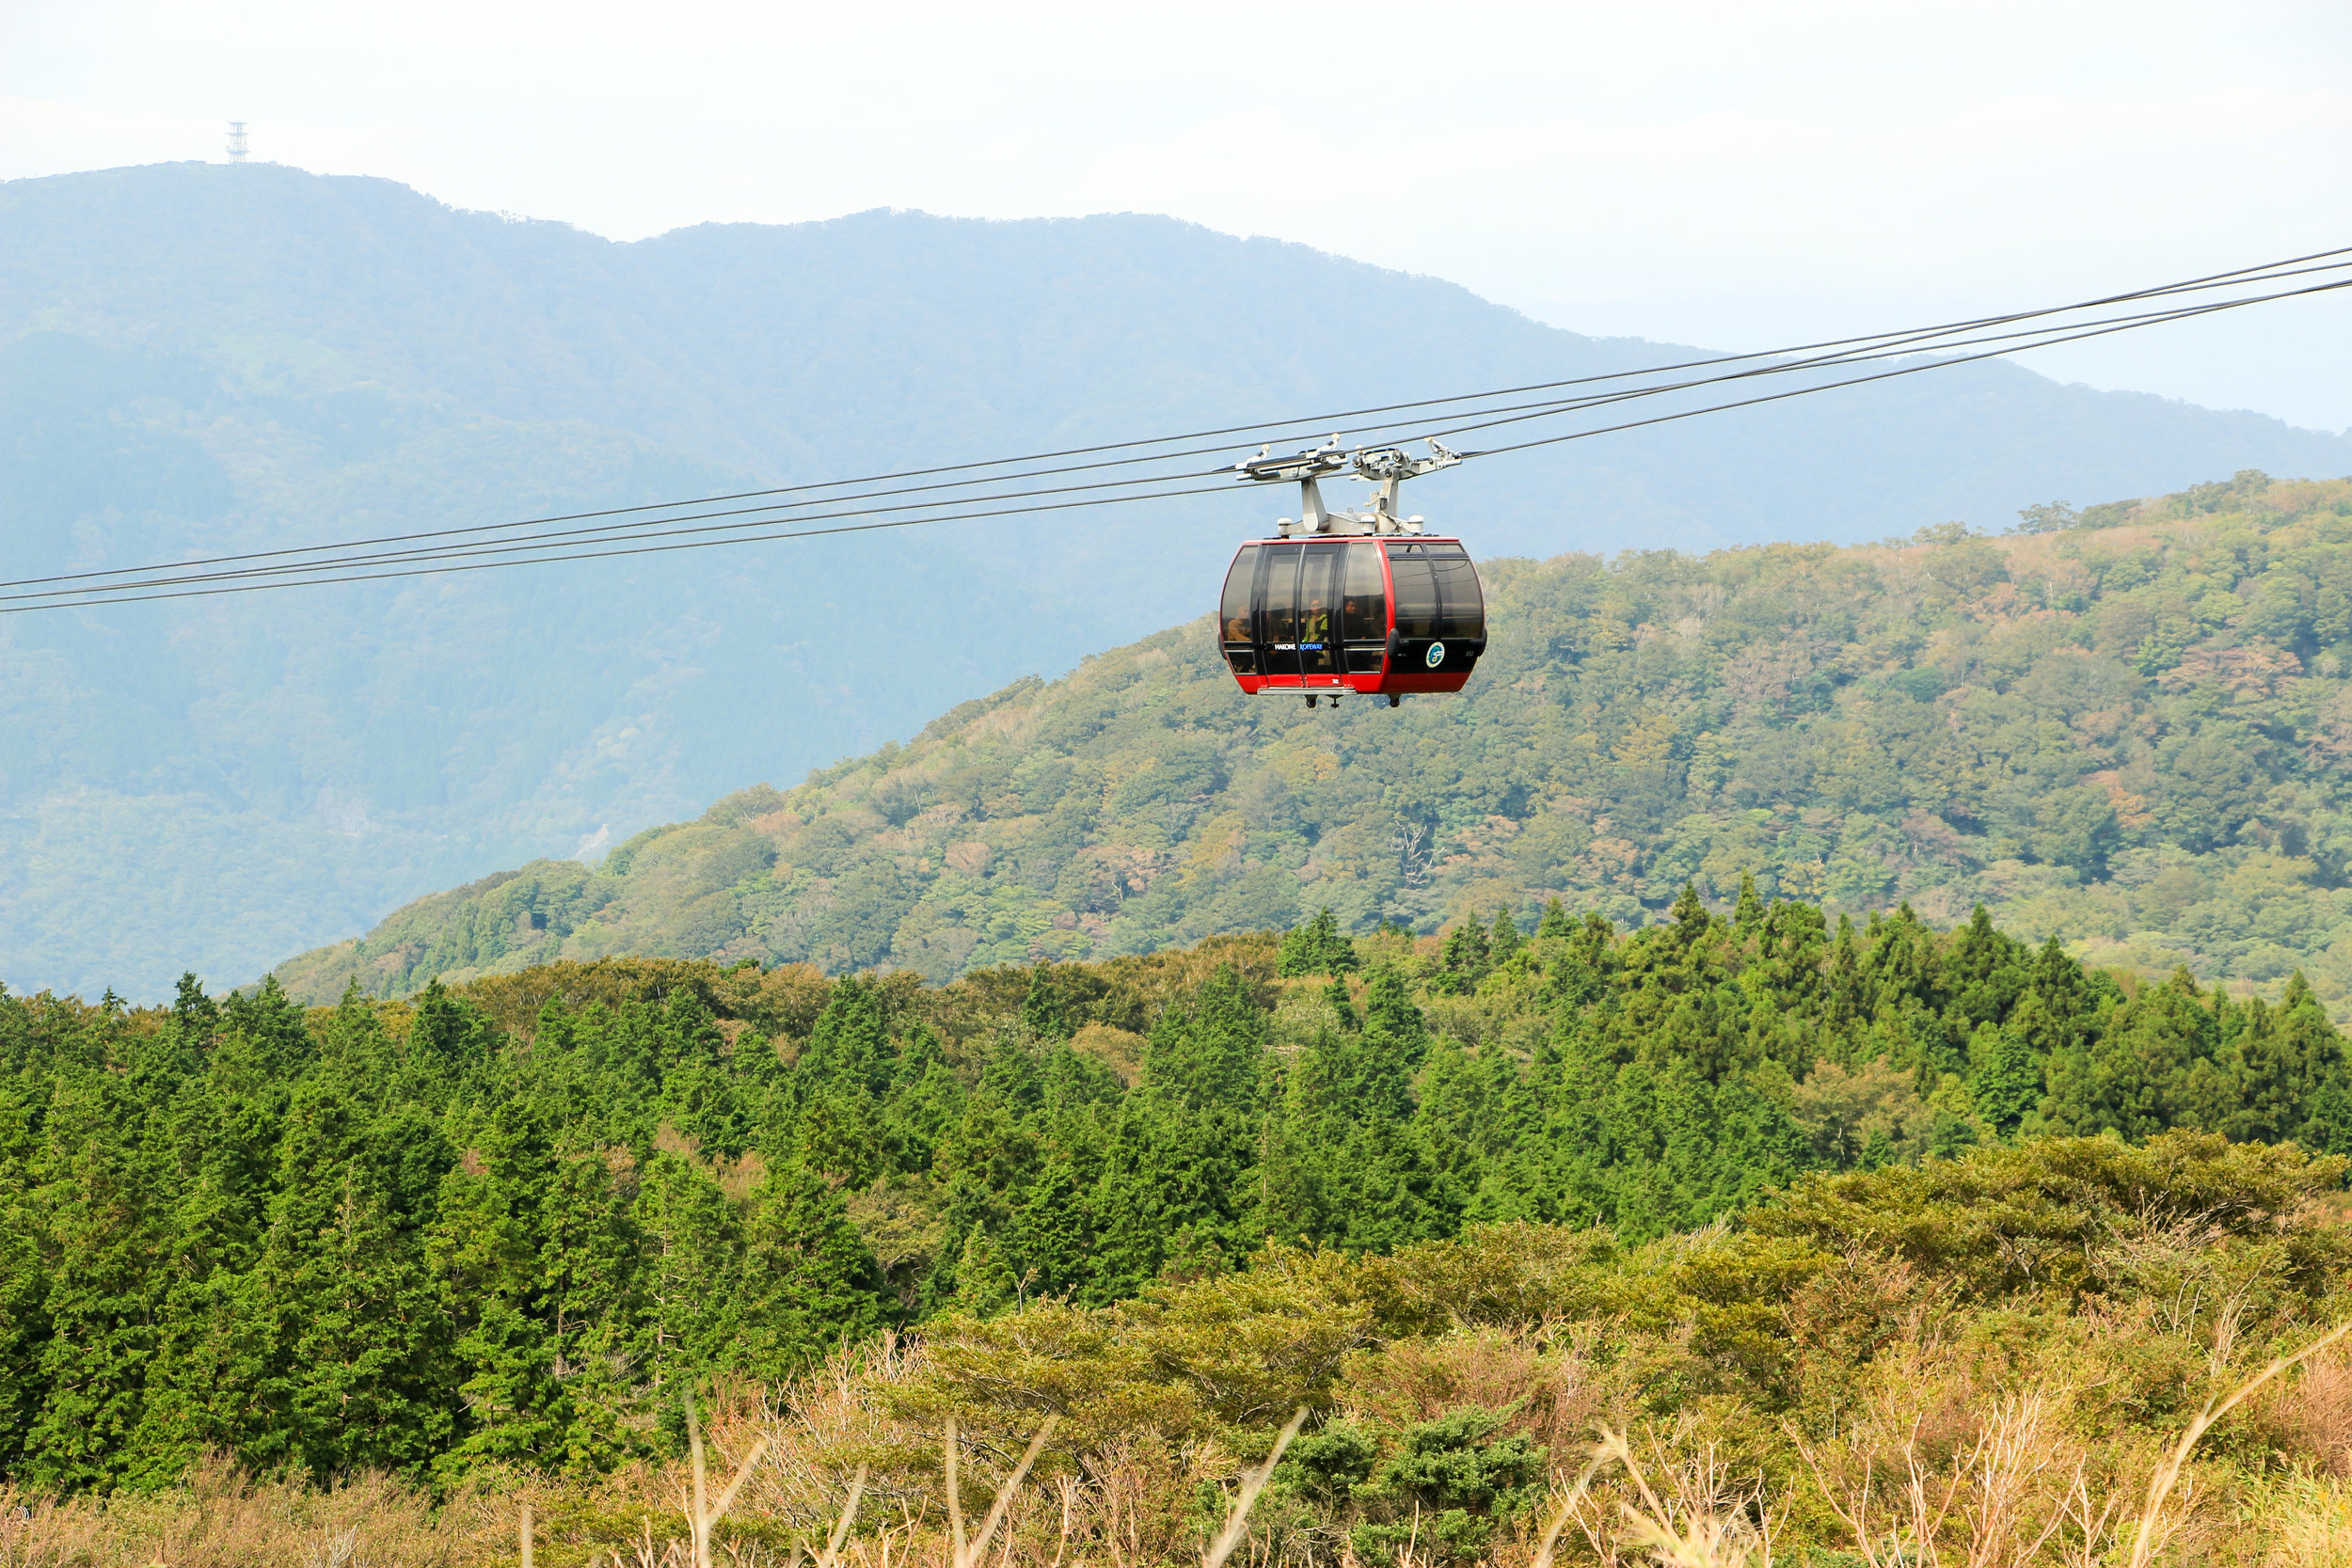 Hakone In A Simple Way Like That | Owakudani, Hakone Ropeway, Fuji-Hakone-Izu National Park | Japan, Asia | DoLessGetMoreDone.com |